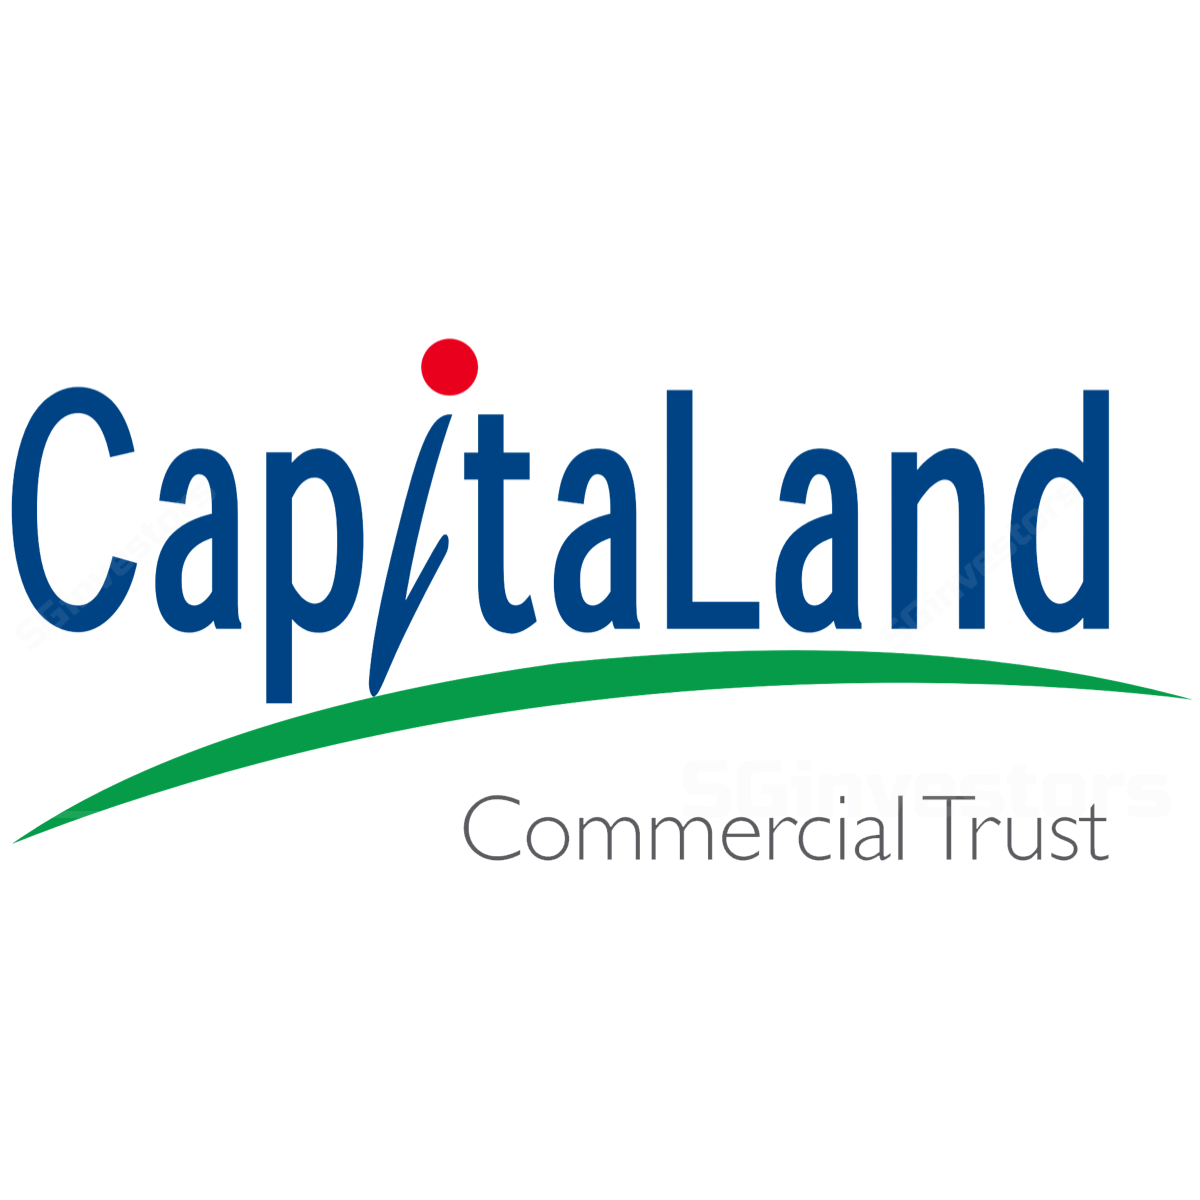 CapitaLand Commercial Trust - OCBC Investment 2018-04-25: Rentals  Gaining Traction